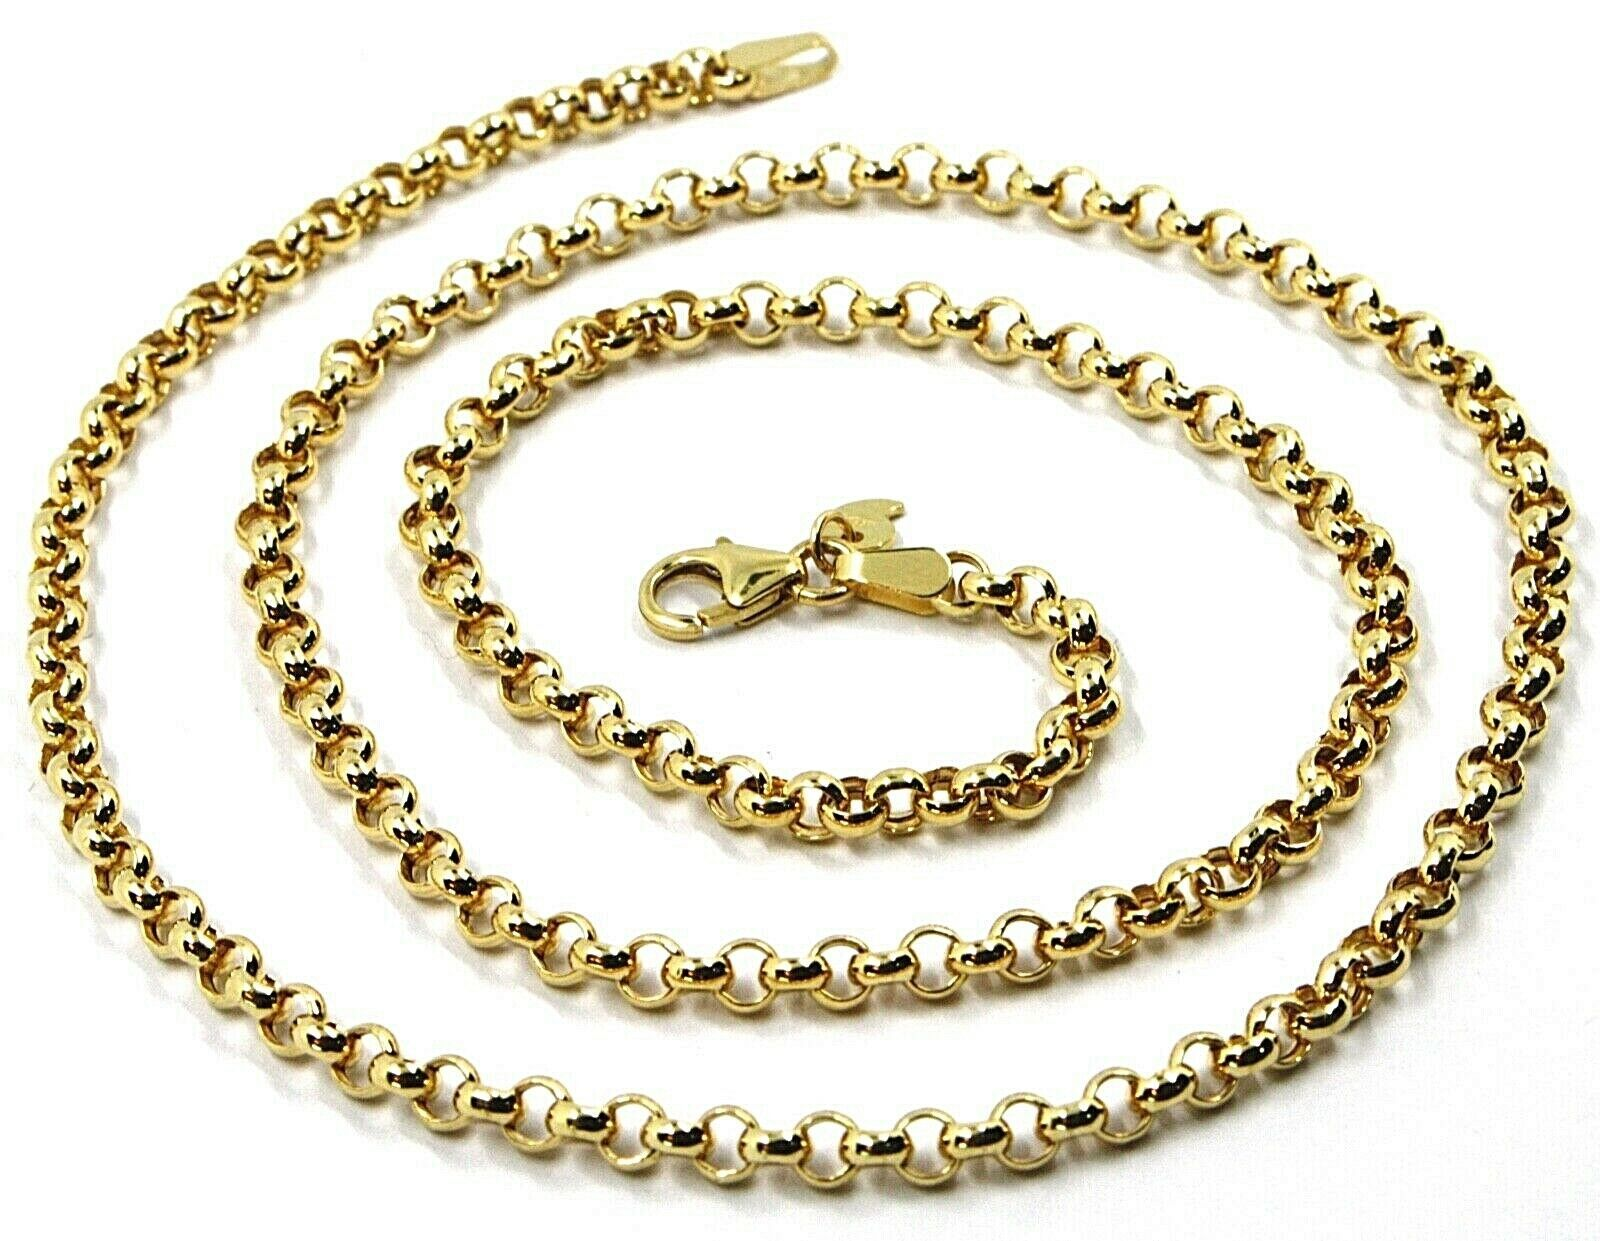 9K YELLOW GOLD CHAIN ROLO CIRCLE LINKS 3.5 MM THICKNESS, 24 INCHES, 60 CM